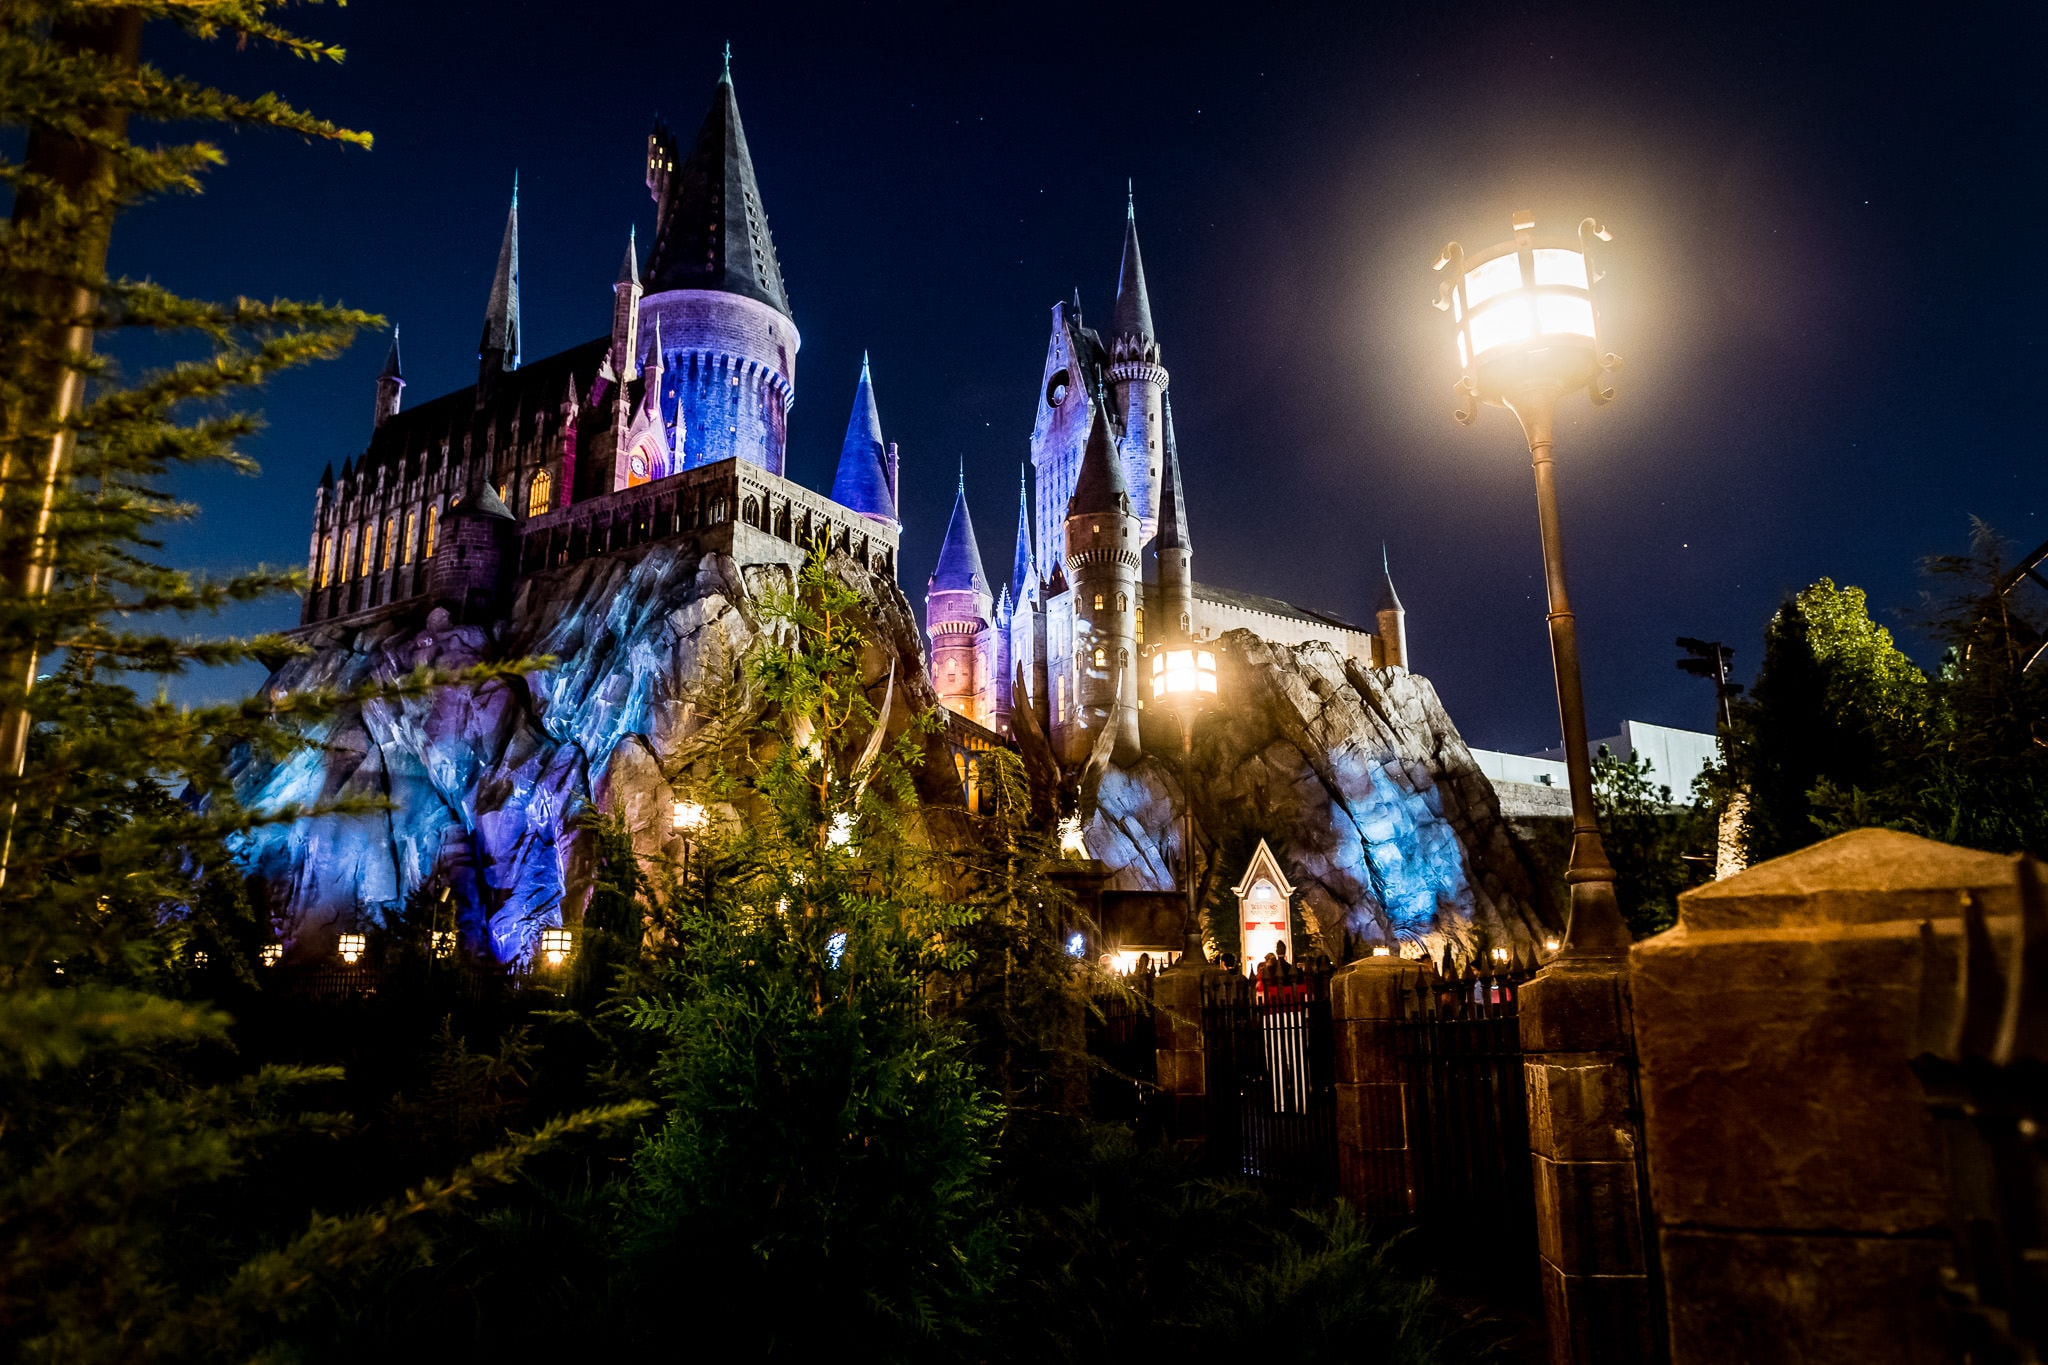 Dramatic and colorful nighttime photo of Hogwarts Castle at the Wizarding World of Harry Potter